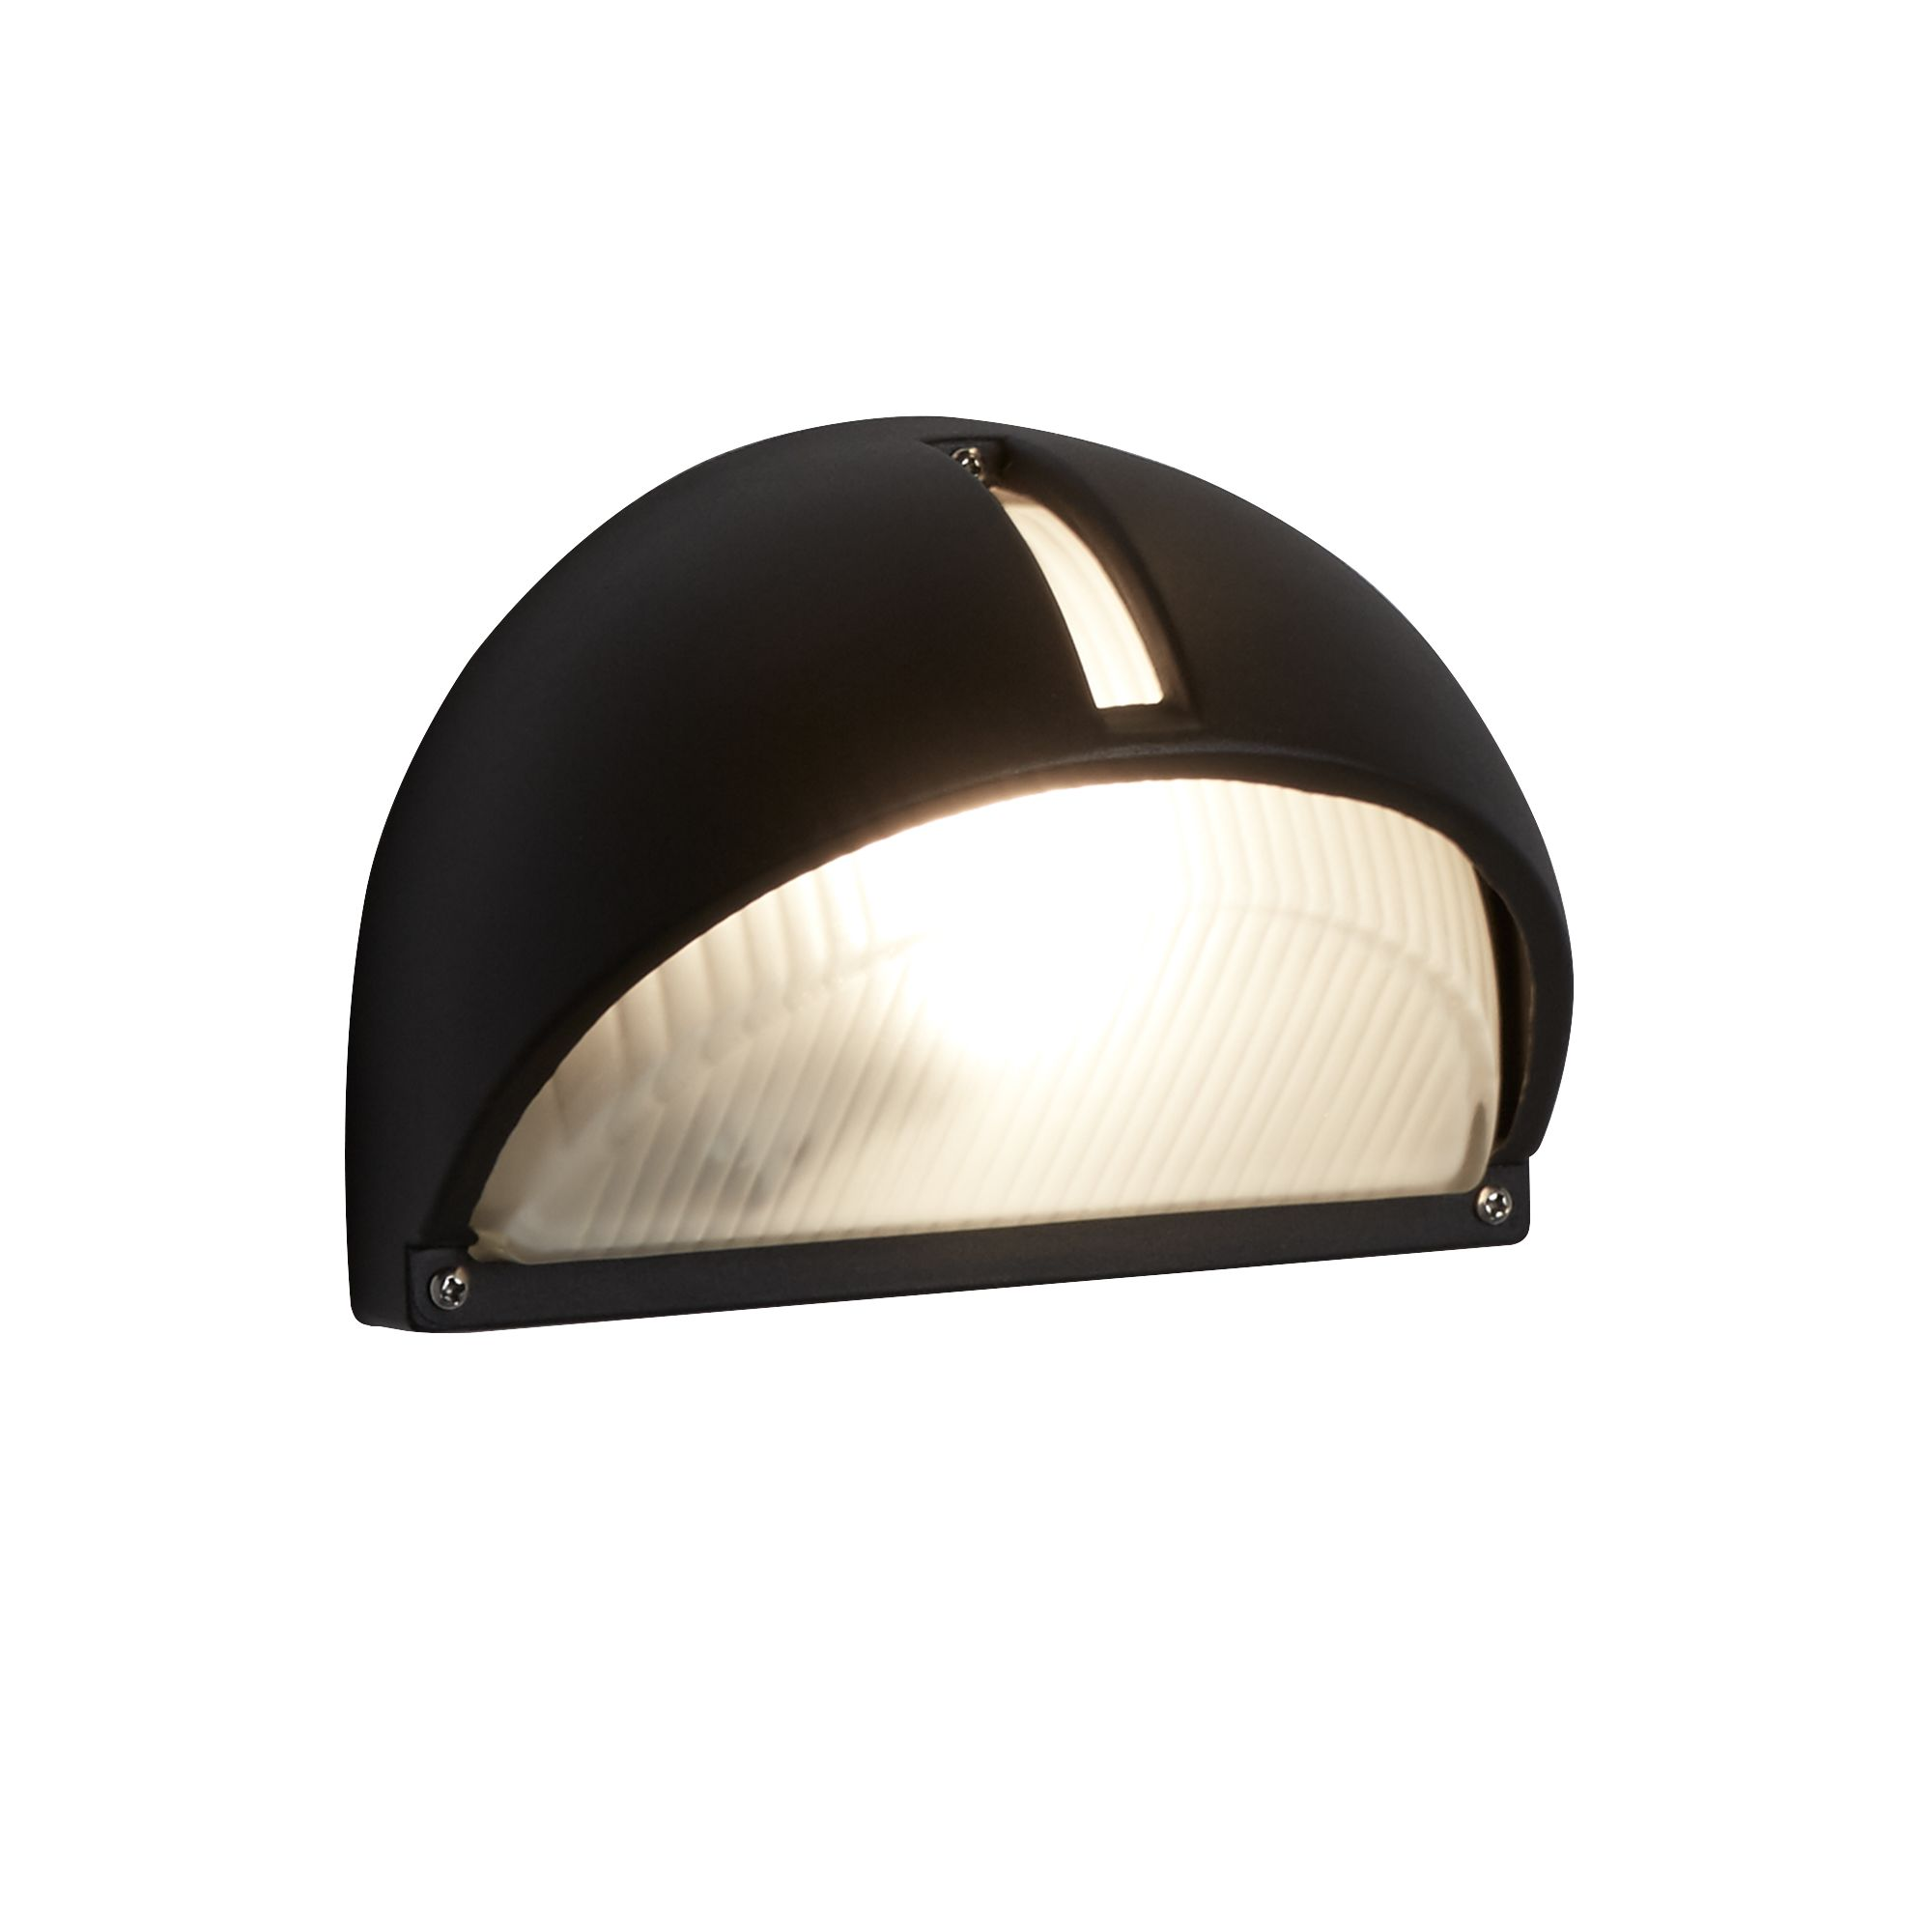 Black Die Cast Aluminium Ip44 Half Moon Outdoor Light With Ridged Frosted Glass